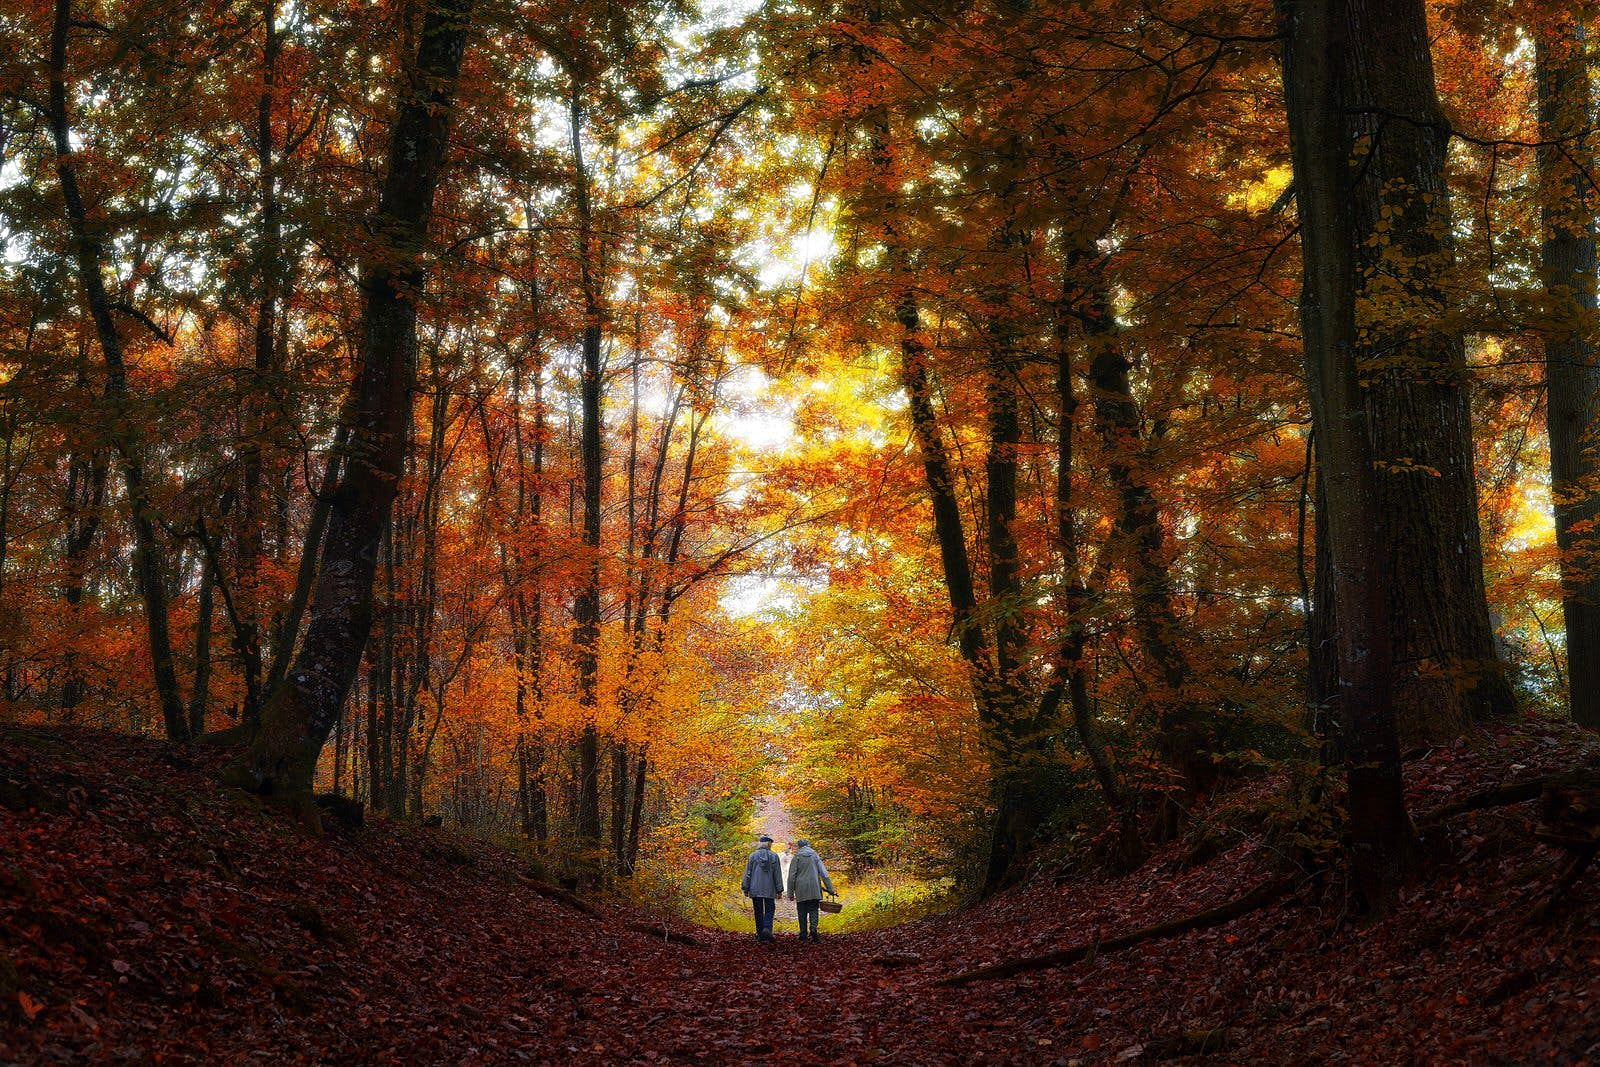 Two hikers walk along a path in the Forêt de Fontainebleau with autumnal trees either side of them